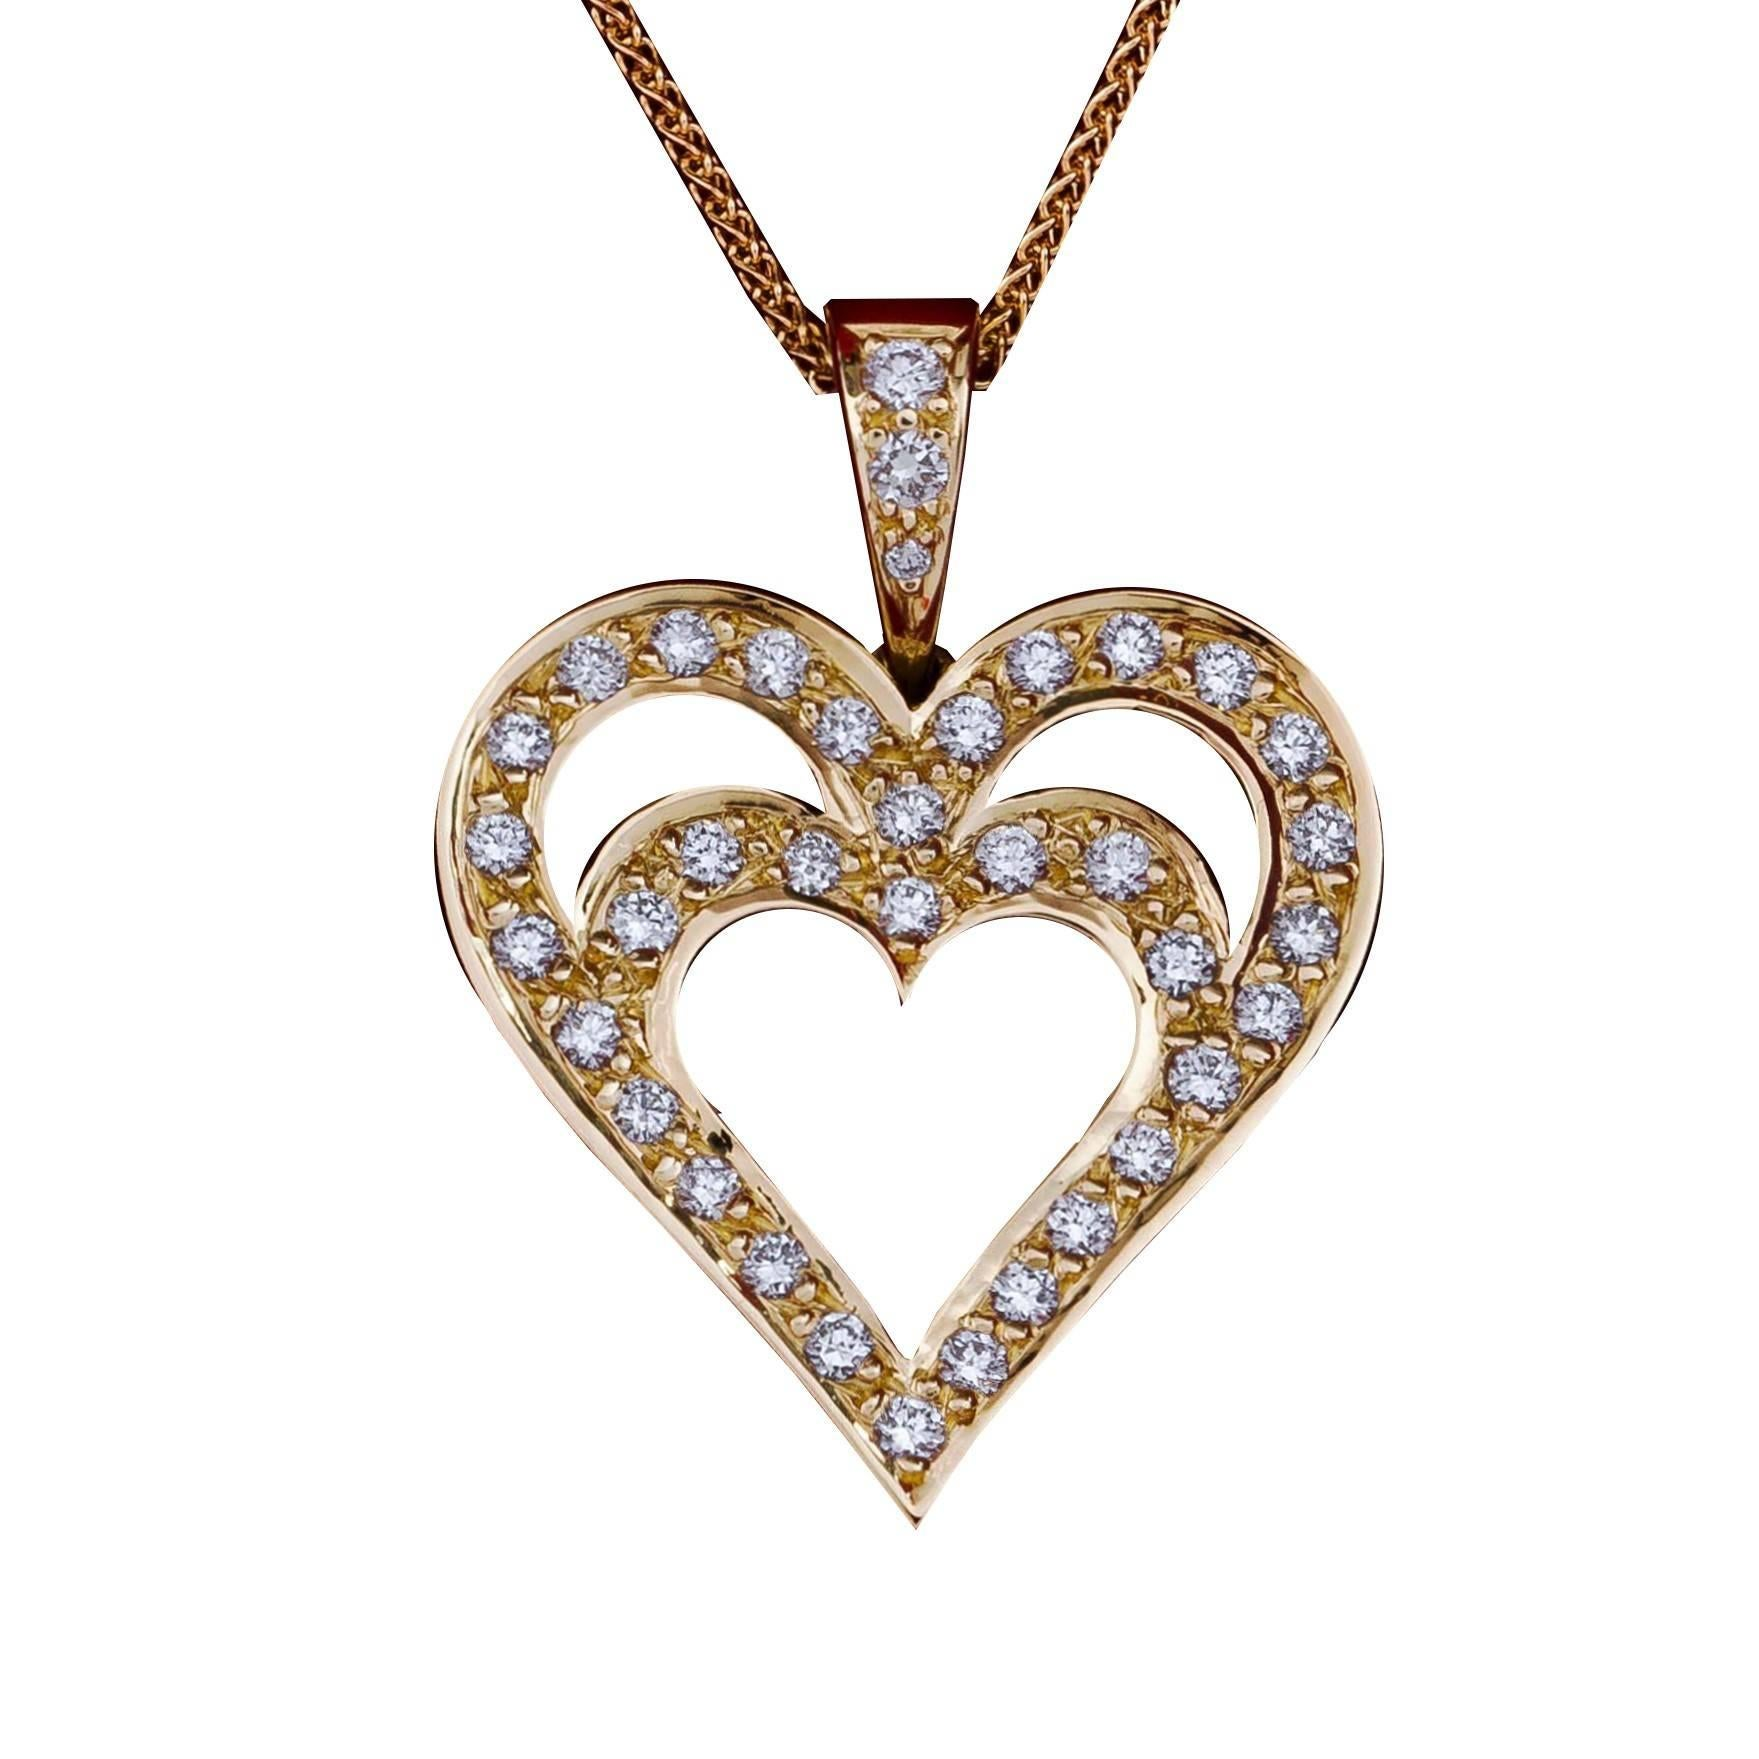 Daou Jewellery 18kt White Gold & Diamond Heart in Heart Pendant - 16 inch - 40 cm - Yellow Gold - 18k qciXvH